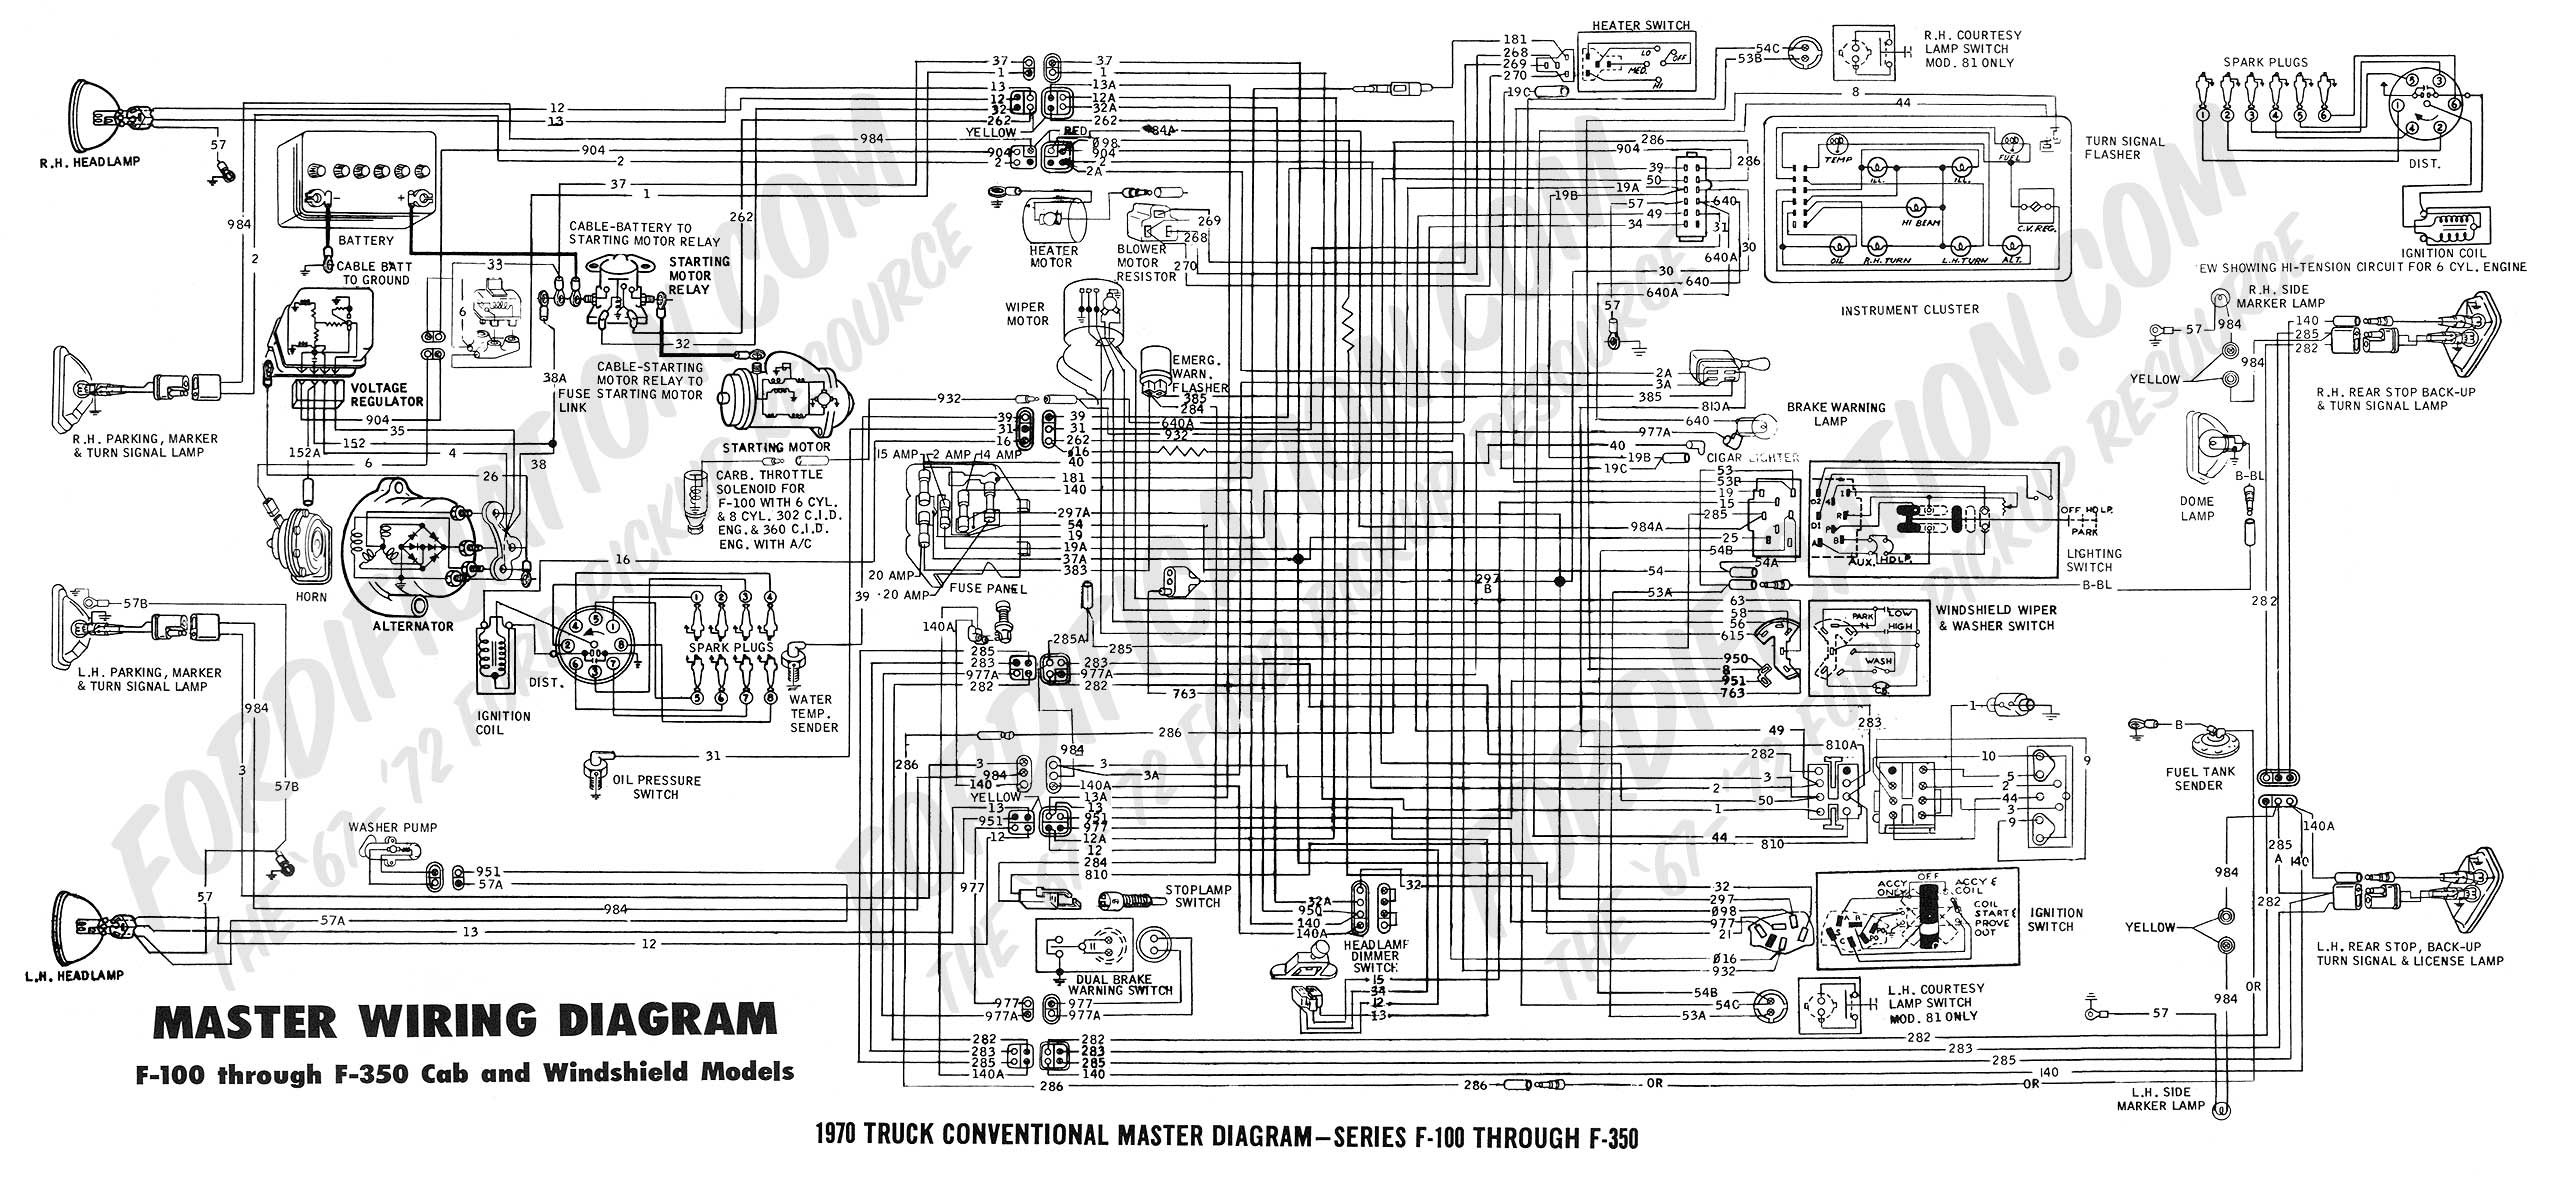 1972 F 100 Wiring Diagram Data Schematics Wiring Diagram \u2022 65 Ford  F100 Wiring Diagram 1972 Ford F100 Wiring Schematics